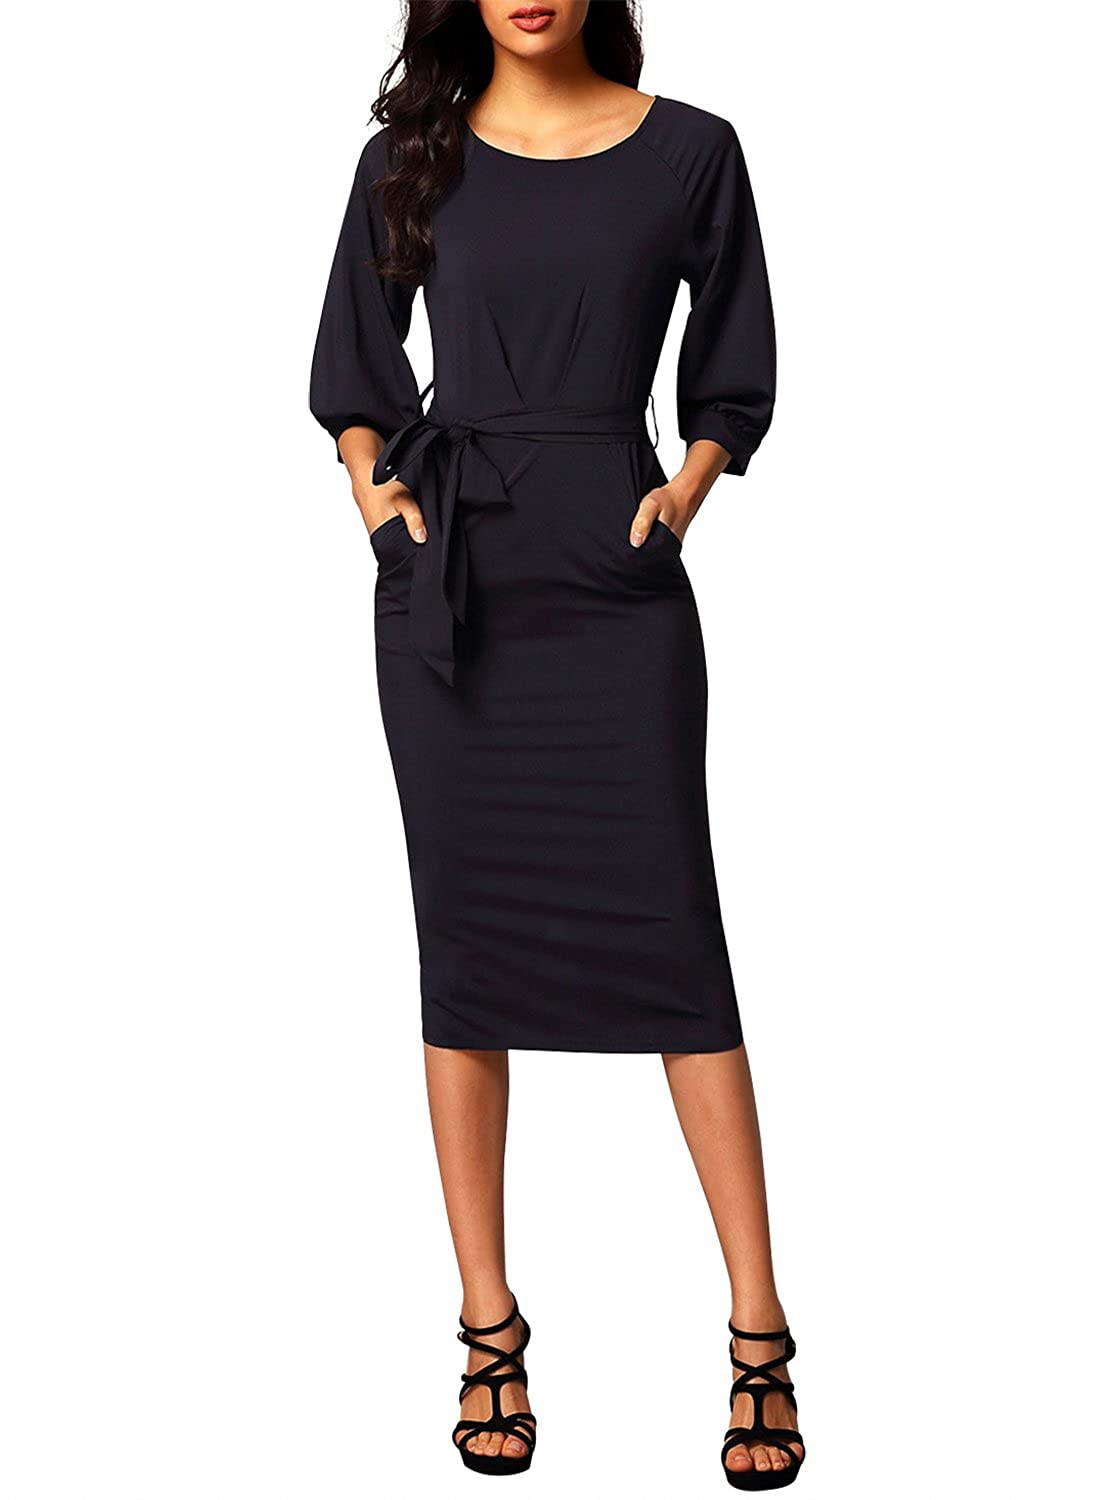 Dearlovers Women Long Sleeve Wear to Work Pencil Dress with Belt at Amazon  Women s Clothing store  99c51d379